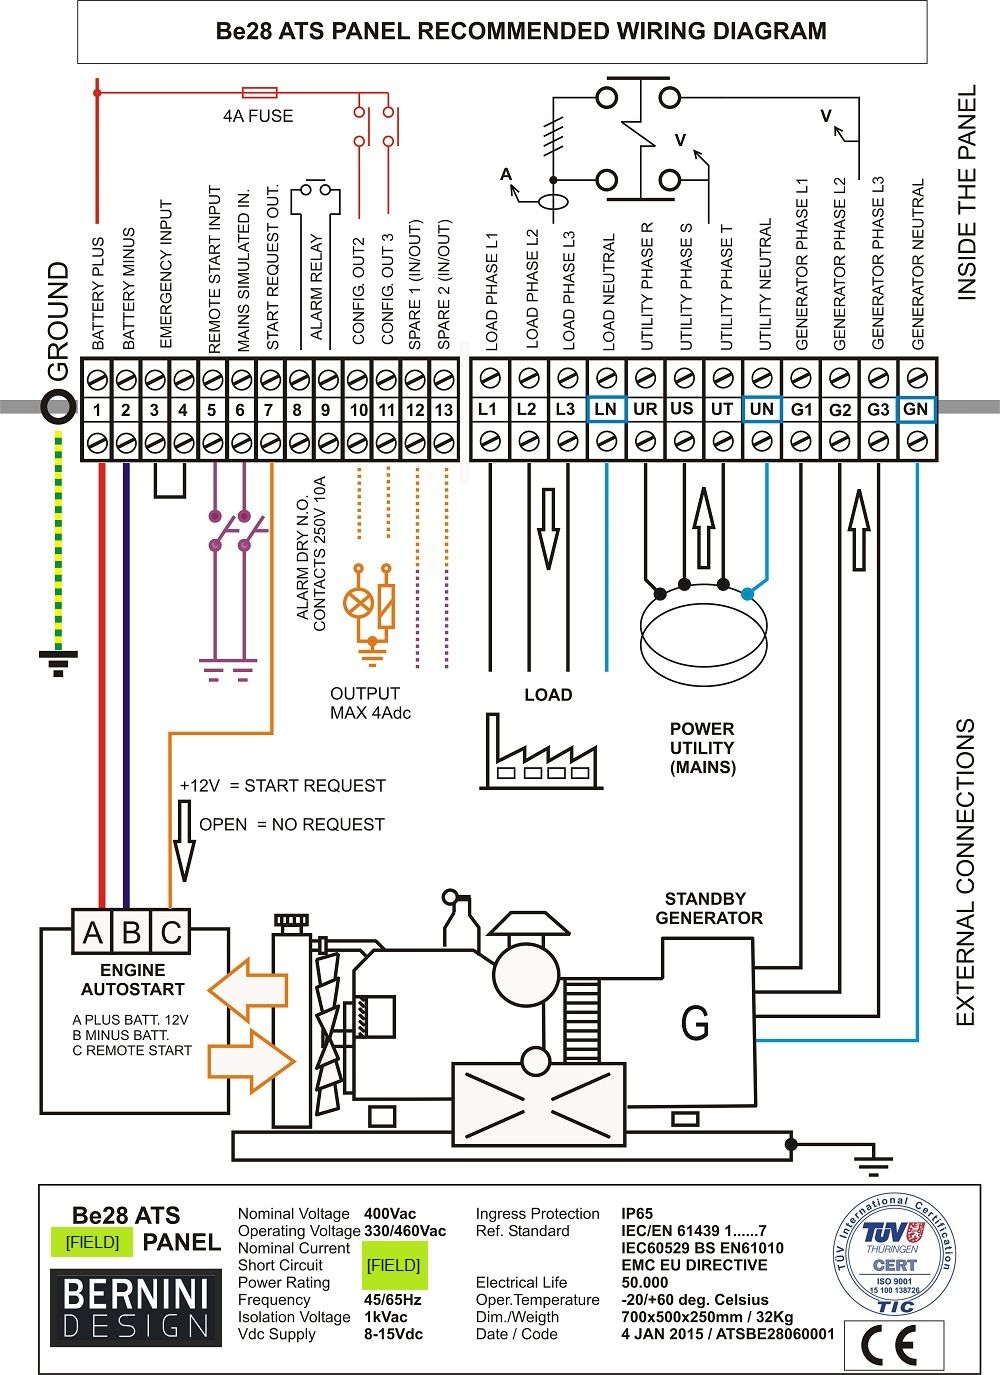 Home Generator Transfer Switch Wiring Diagram on generator voltage regulator wiring diagram, electrical sub panel wiring diagram, kohler wiring diagram, electrical generator wiring diagram, magnum inverter wiring diagram, 30 amp twist lock wiring diagram, portable generator voltage control wiring diagram, home generator transfer switch installation, 20a generator wiring diagram, generac automatic transfer switch diagram, home power transfer switches, portable generators repair wiring diagram, 30 amp generator plug wiring diagram, standby generator wiring diagram, generac generator wiring diagram, coleman generator wiring diagram, chevy truck wiring diagram, generator internal wiring diagram, ac generator wiring diagram, onan generator wiring diagram,